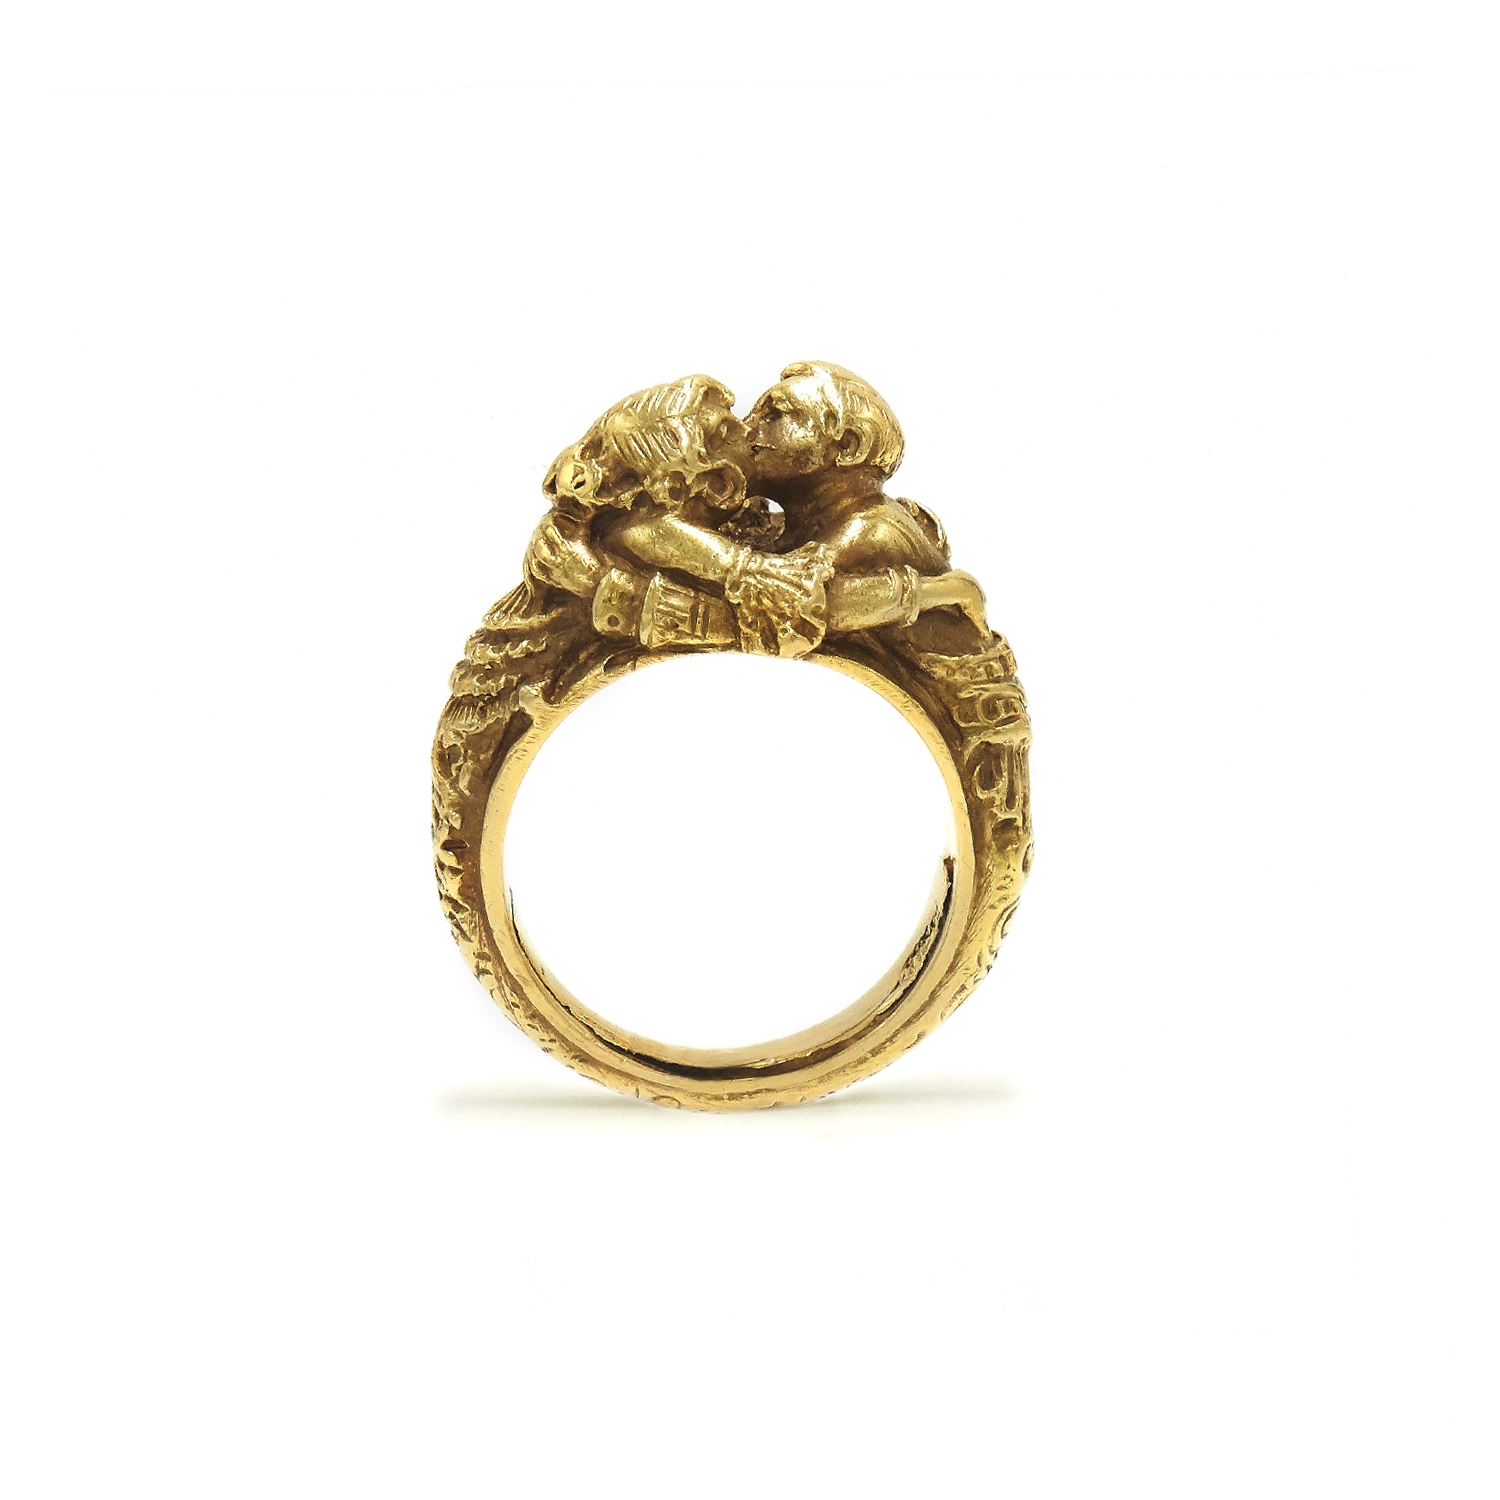 Antique 18K Yellow Gold Chased Lovers Embrace Ring Style R-24185-FL-0-0